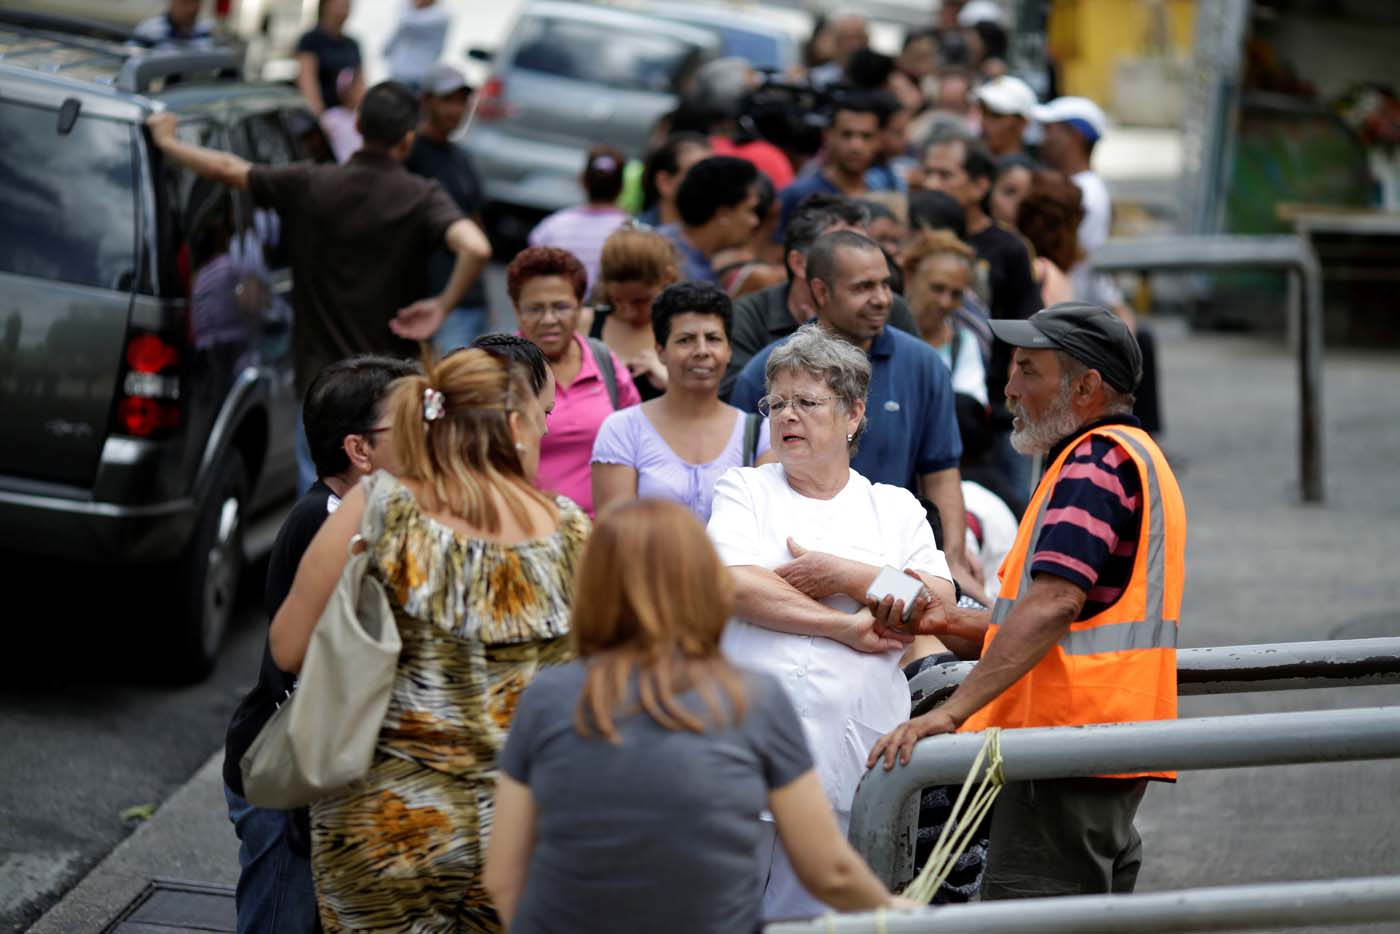 Venezuelan citizens line up to buy food at a store after a strike called to protest against Venezuelan President Nicolas Maduro's government in Caracas, Venezuela, July 29, 2017. REUTERS/Ueslei Marcelino